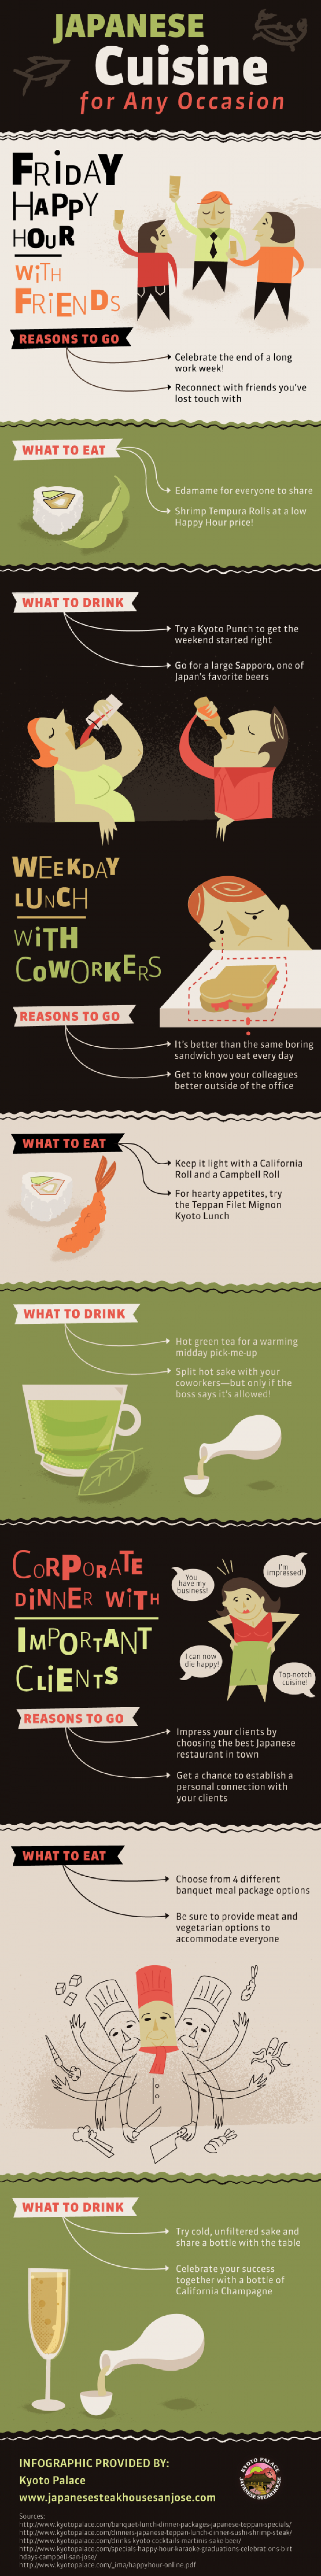 Japanese Cuisine for Any Occasion Infographic